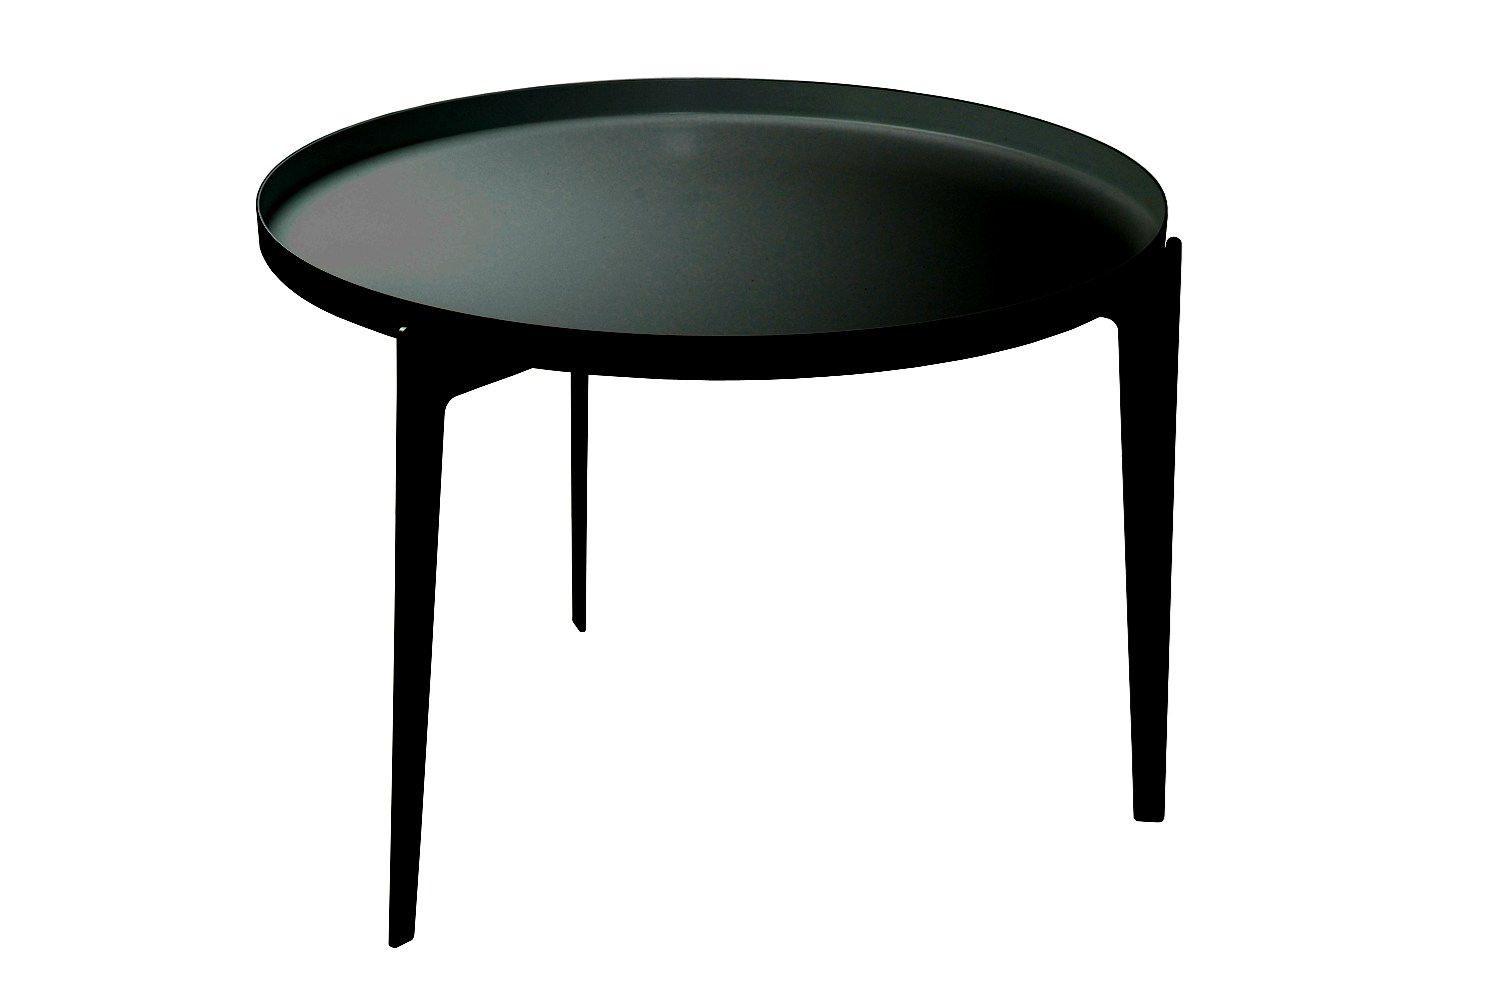 painted metal coffee table tray illusion by covo design. Black Bedroom Furniture Sets. Home Design Ideas